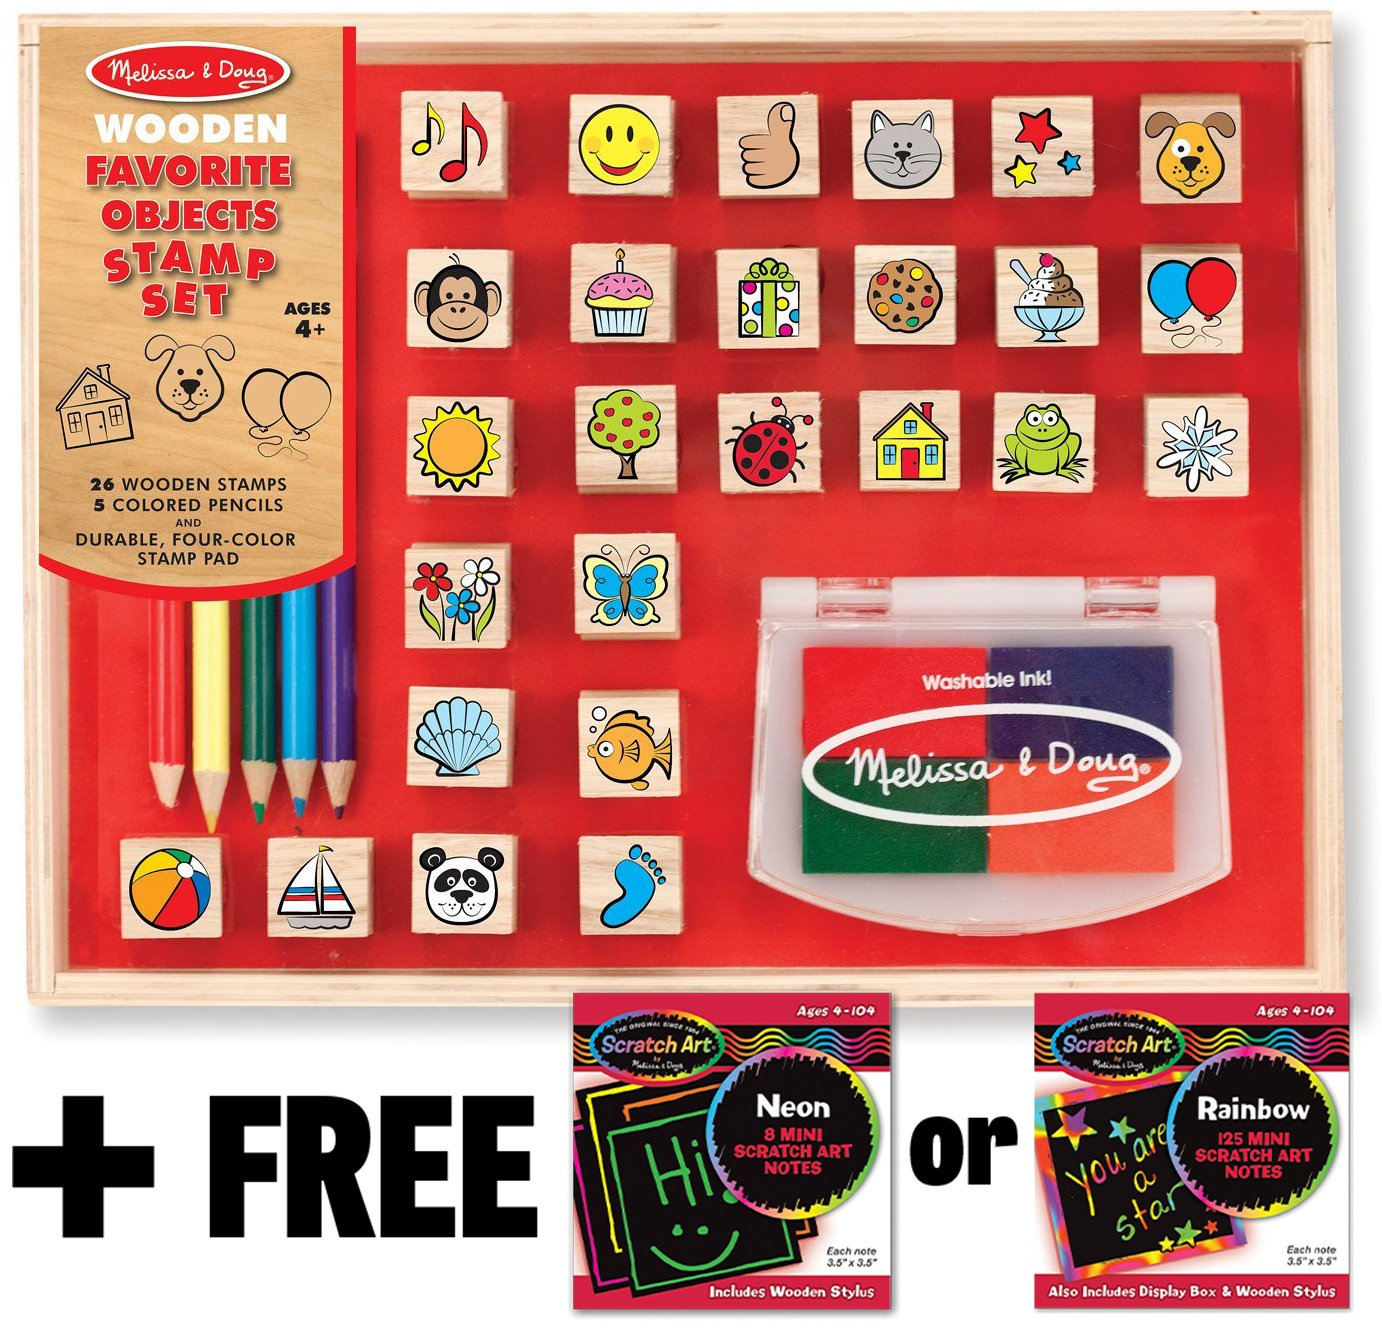 Favorite Things: Wooden Stamp Set and FREE Melissa Doug Scratch Art Mini-Pad Bundle